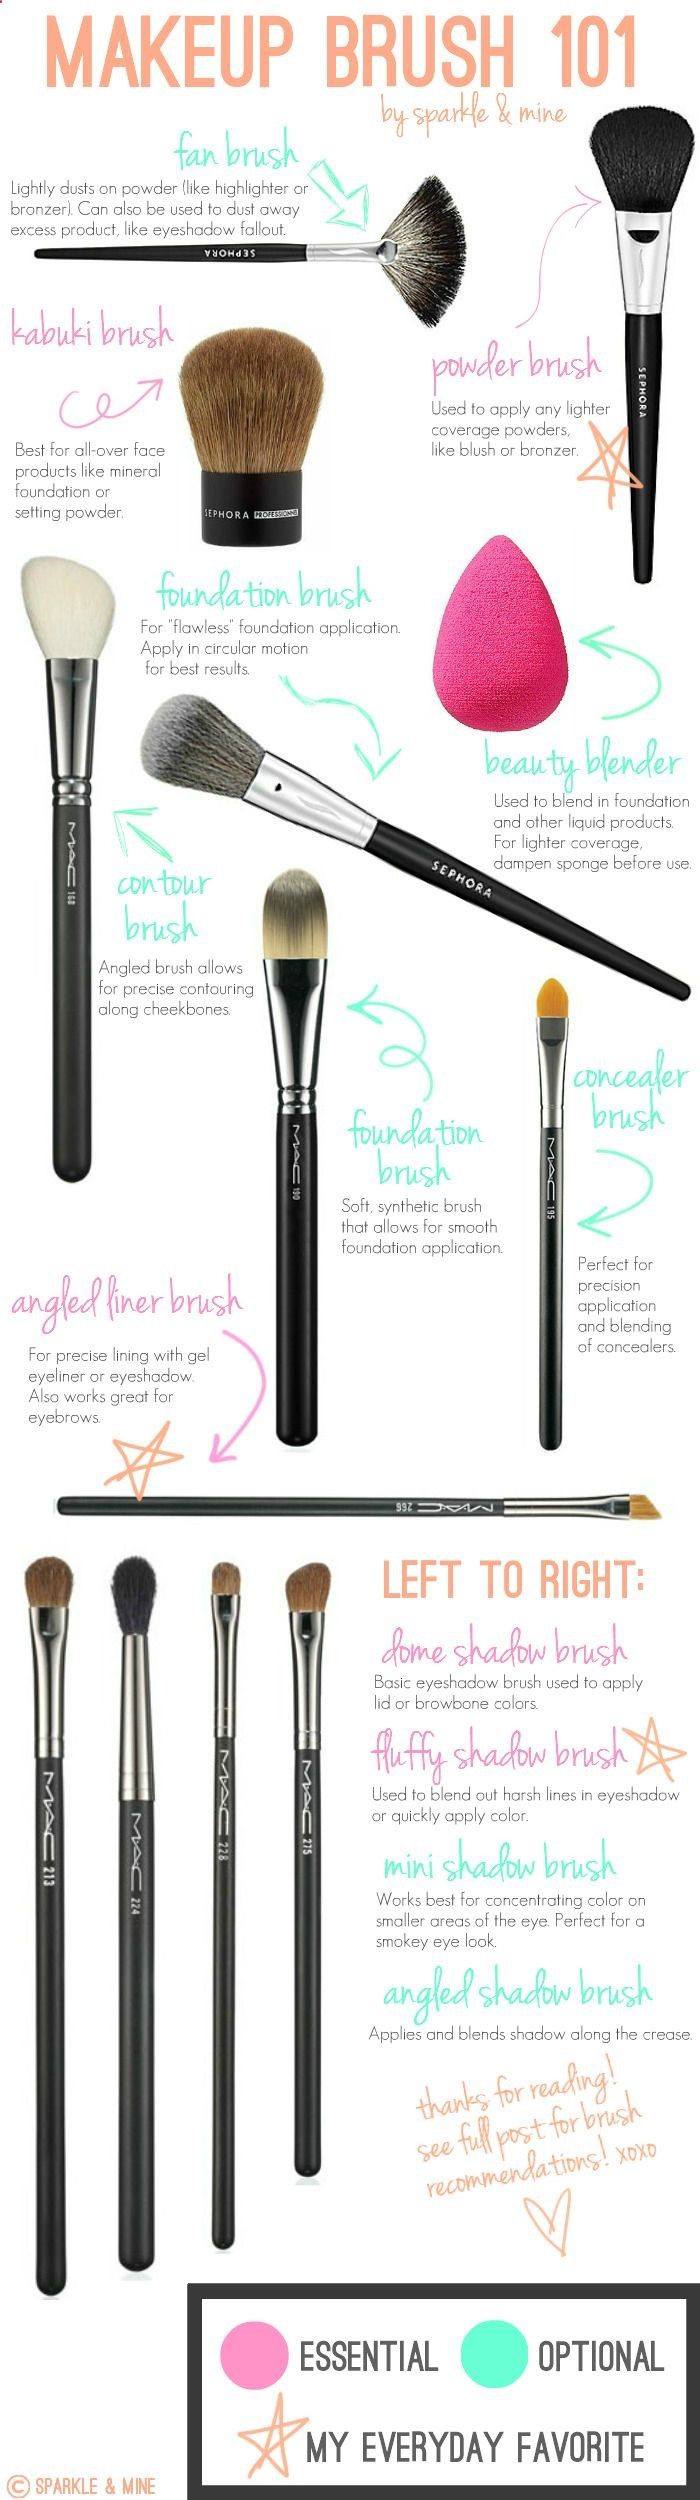 Makeup Brush 101! Oh my gosh, where has this pin been all my life?!